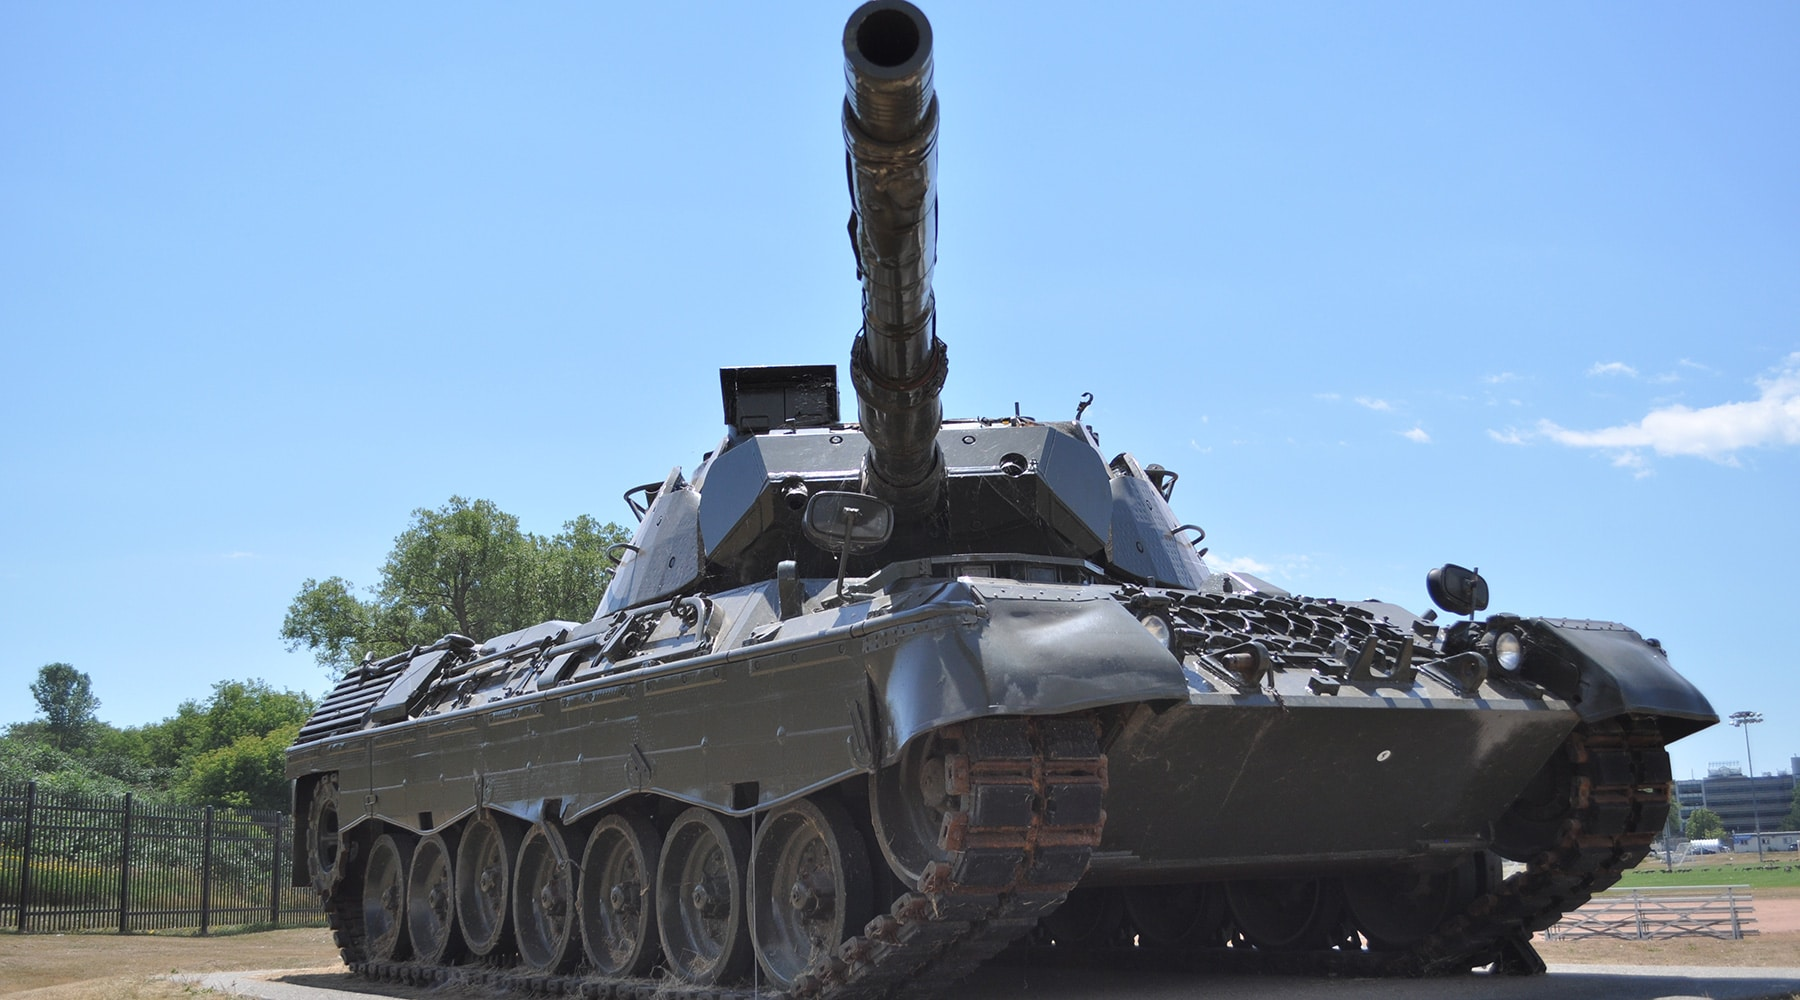 A military army tank.